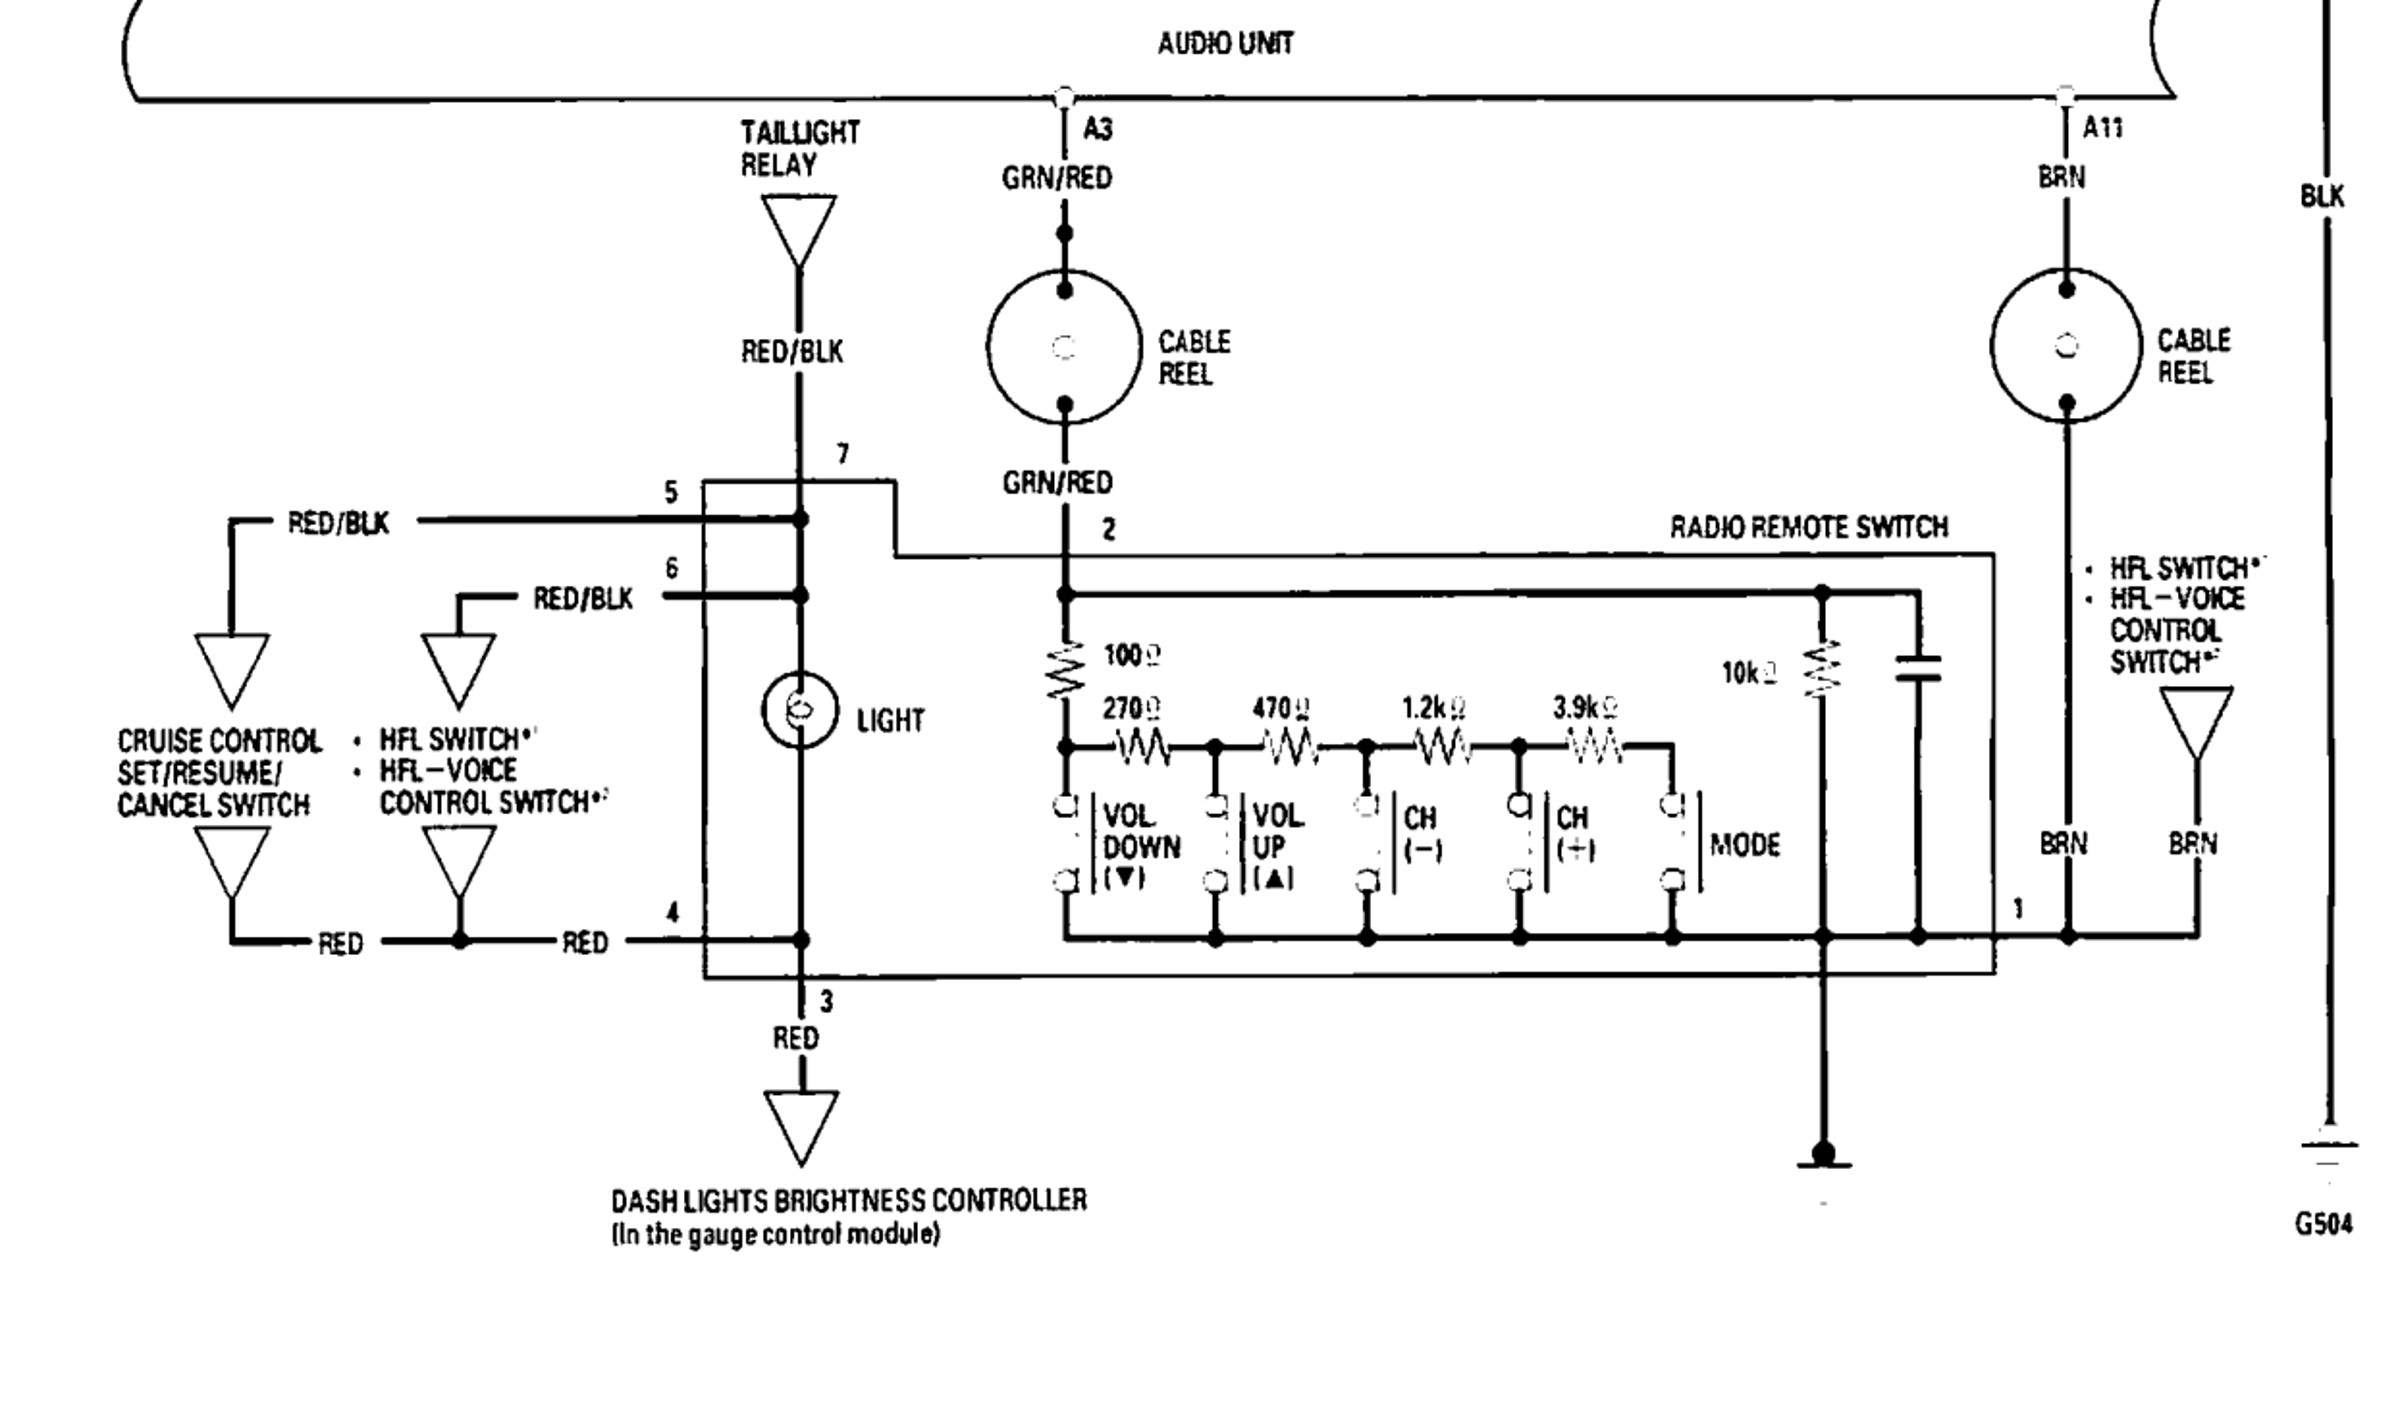 steering wheel control wiring diagrams 4 way switch telecaster diagram joycon exr pc interface with